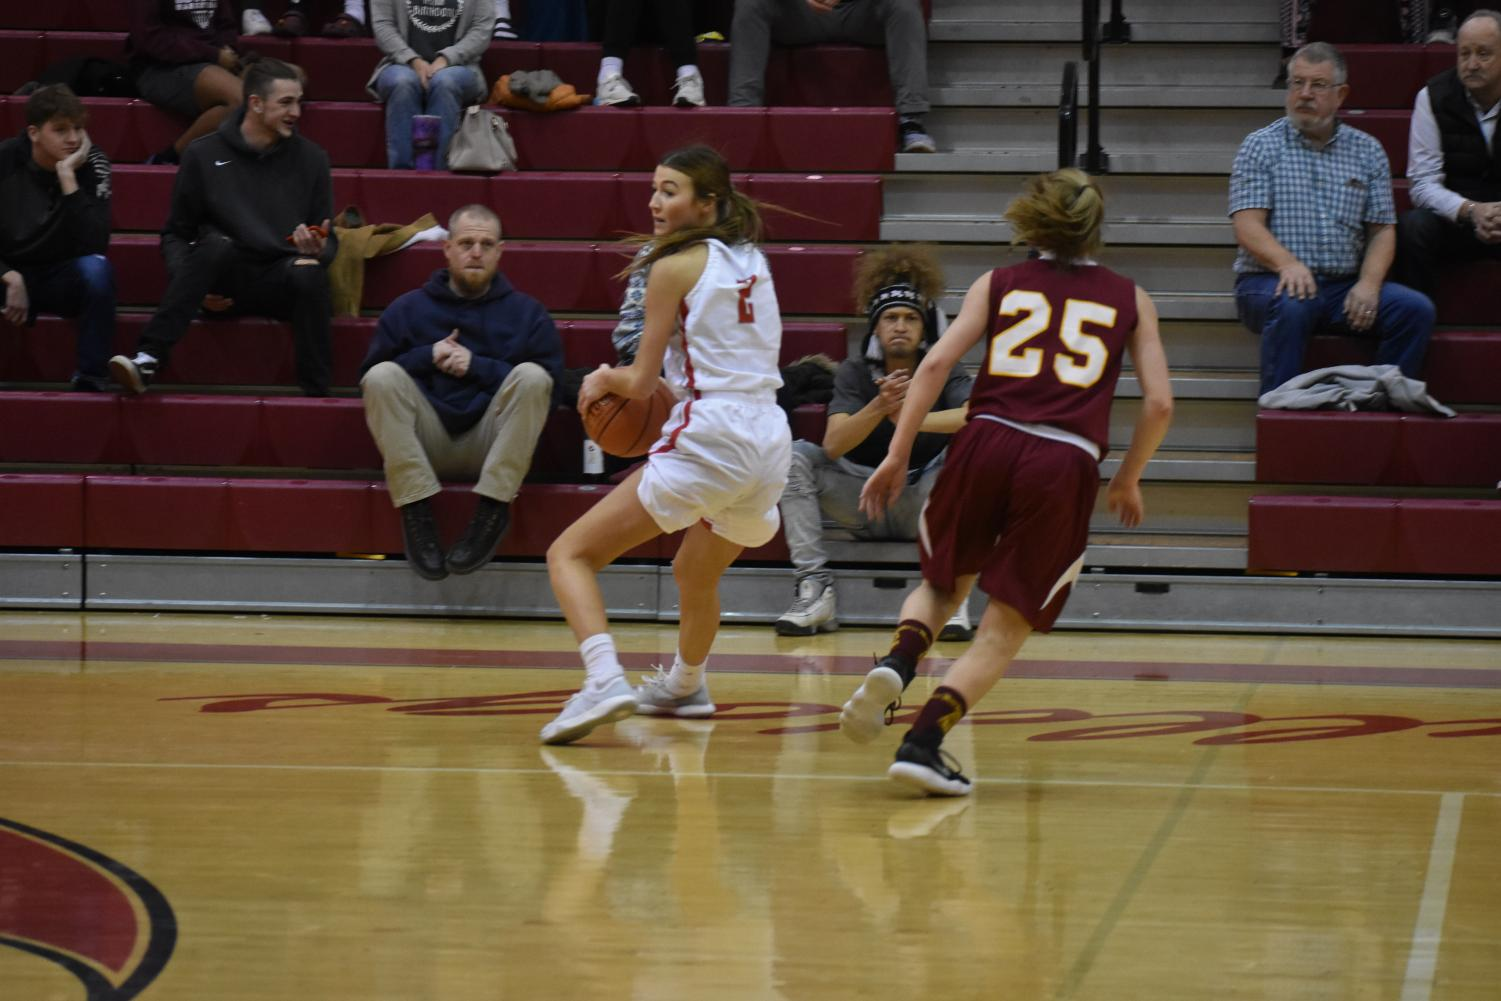 Senior Chloe Keller searches for a teammate to pass the ball to.